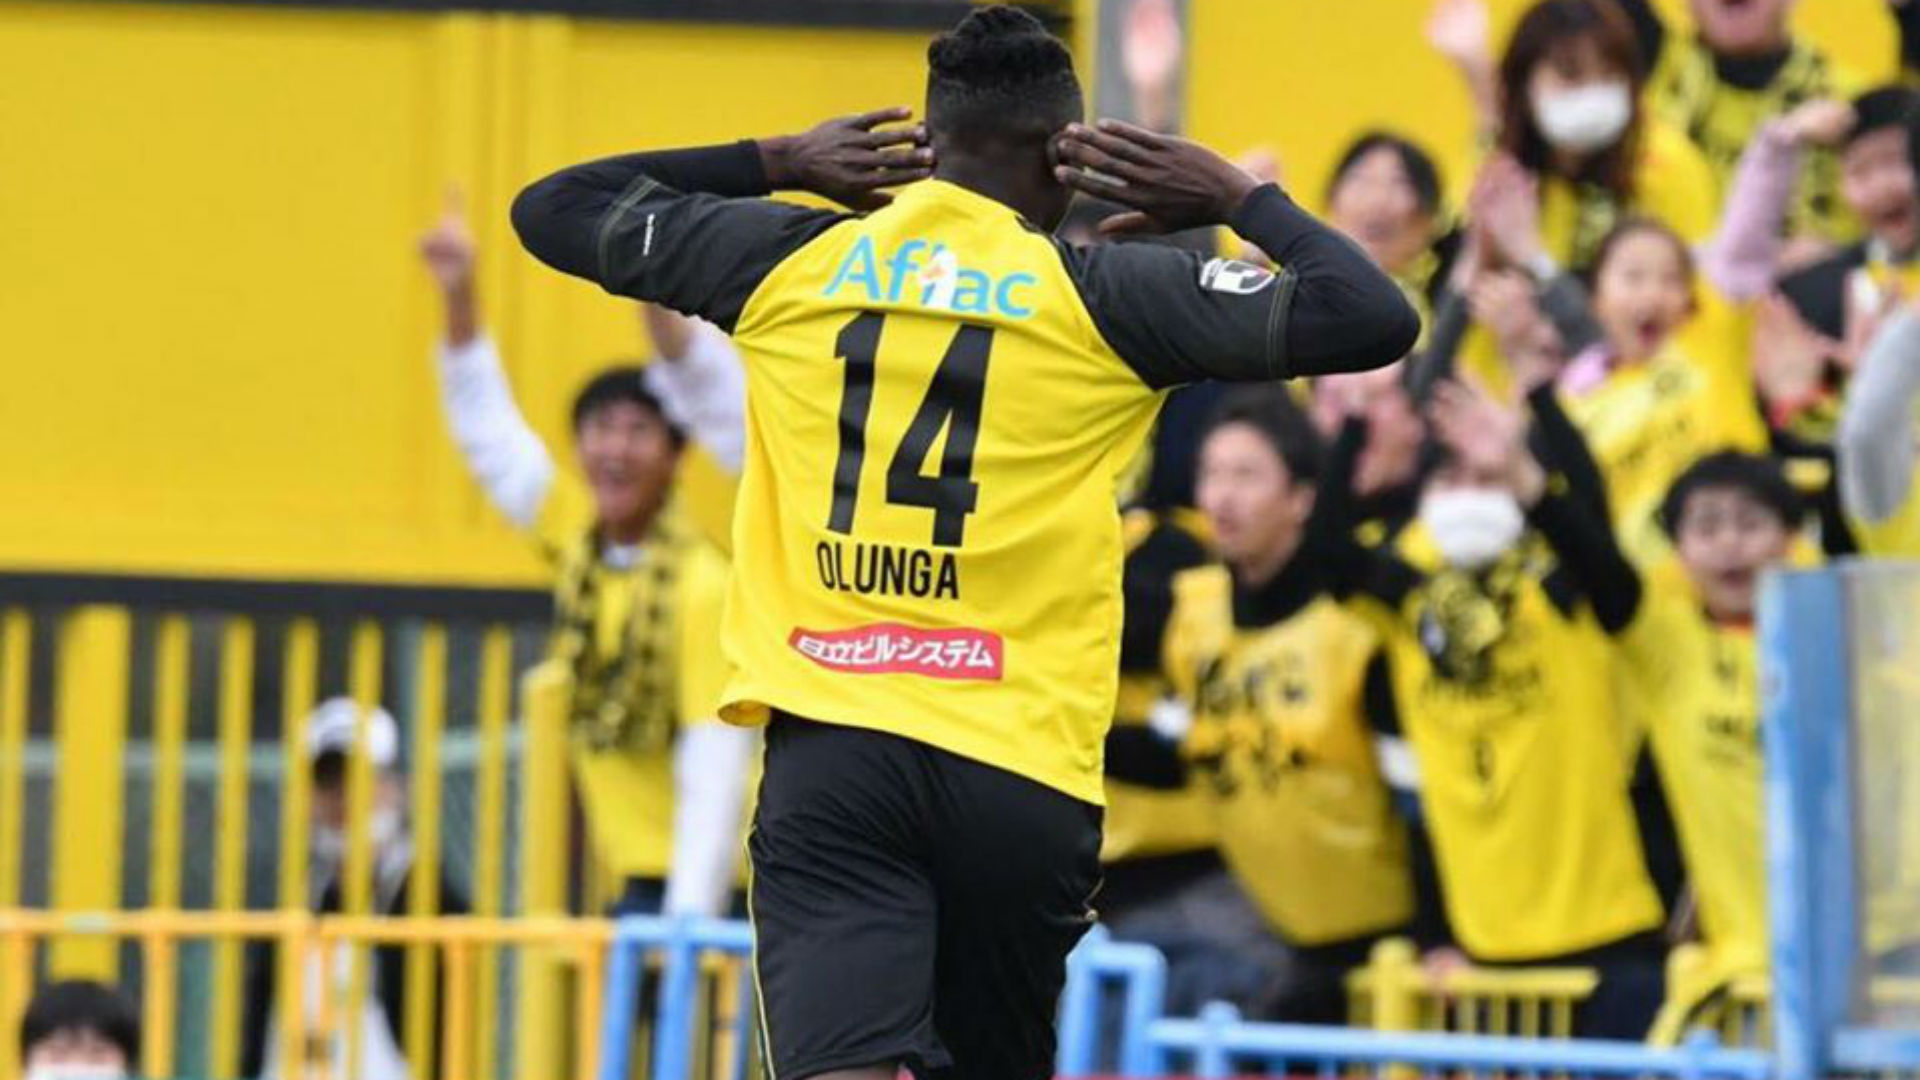 Coronavirus: I was hitting form when the J-League stopped – Olunga